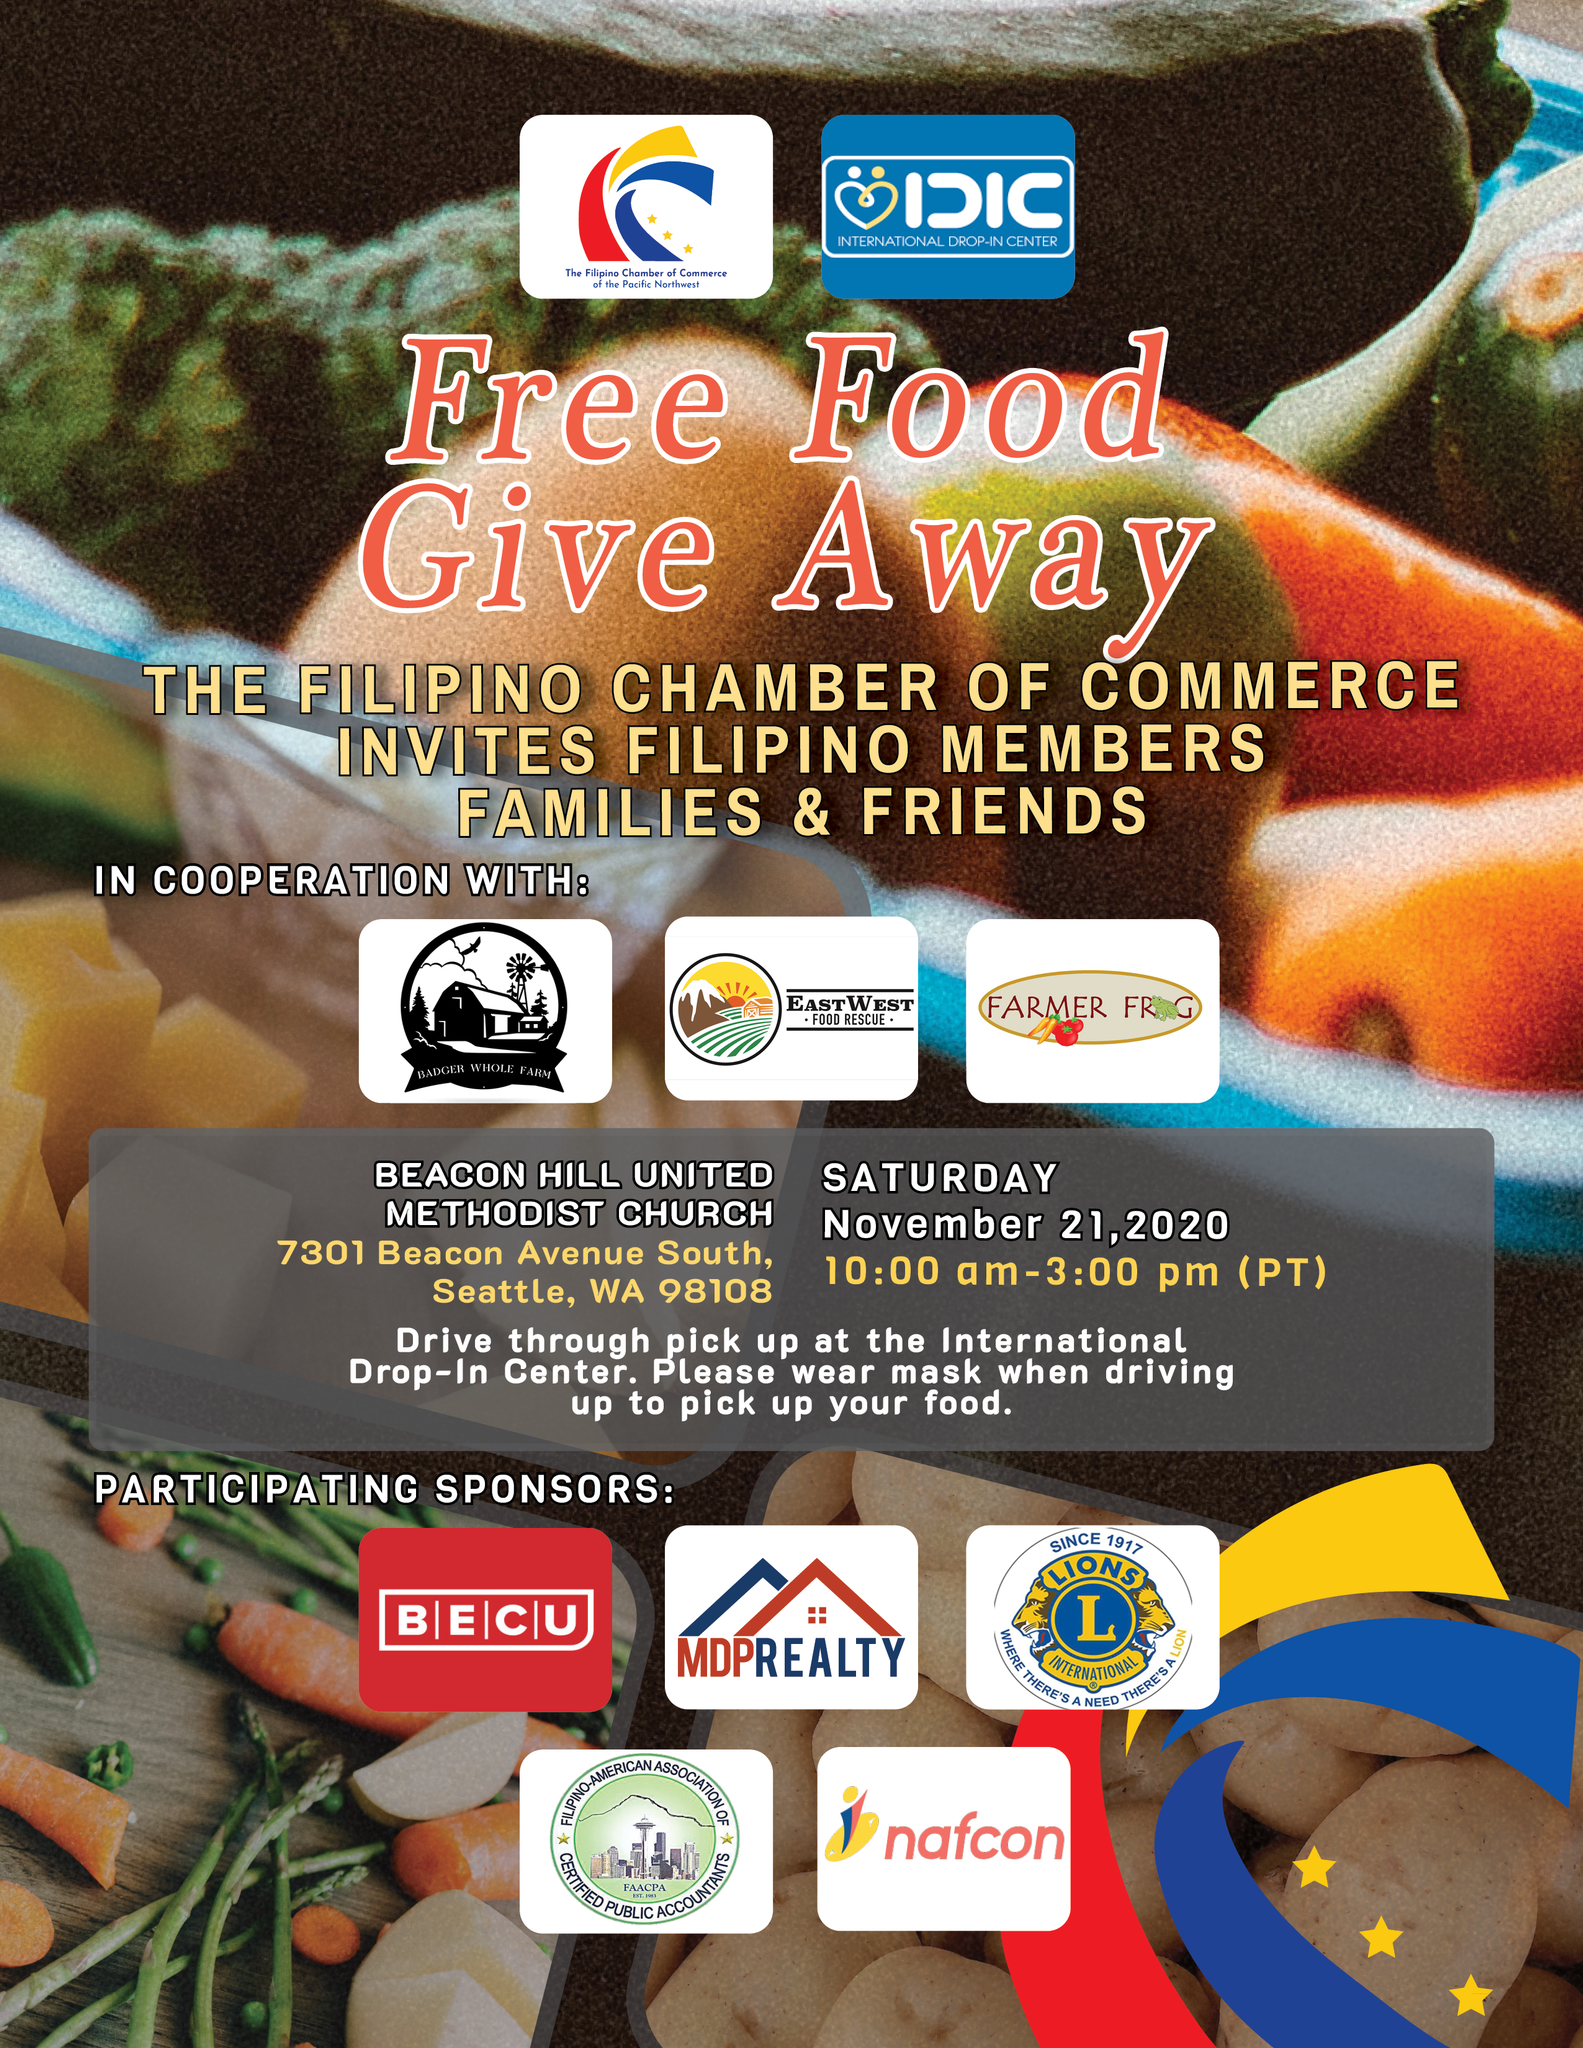 The Filipino Chamber of Commerce of the PNW - Free Food Give Away - for Filipino community members, families, and friends in Seattle, WA